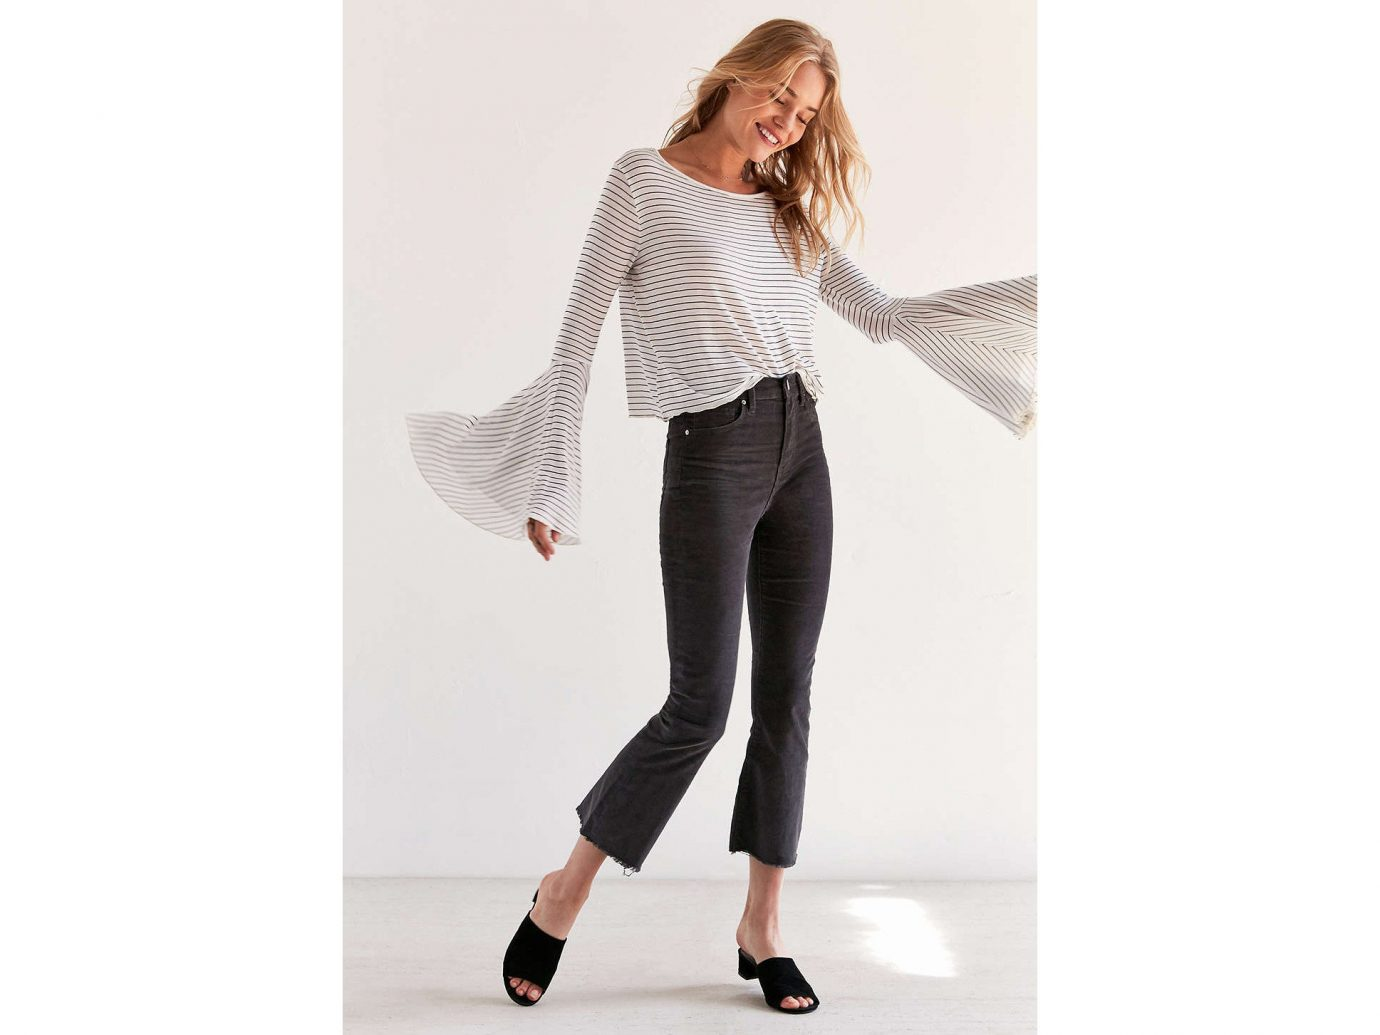 Style + Design clothing person woman jeans shoulder fashion model waist leggings outerwear neck joint sleeve trousers tights trunk abdomen shoe pattern trouser posing